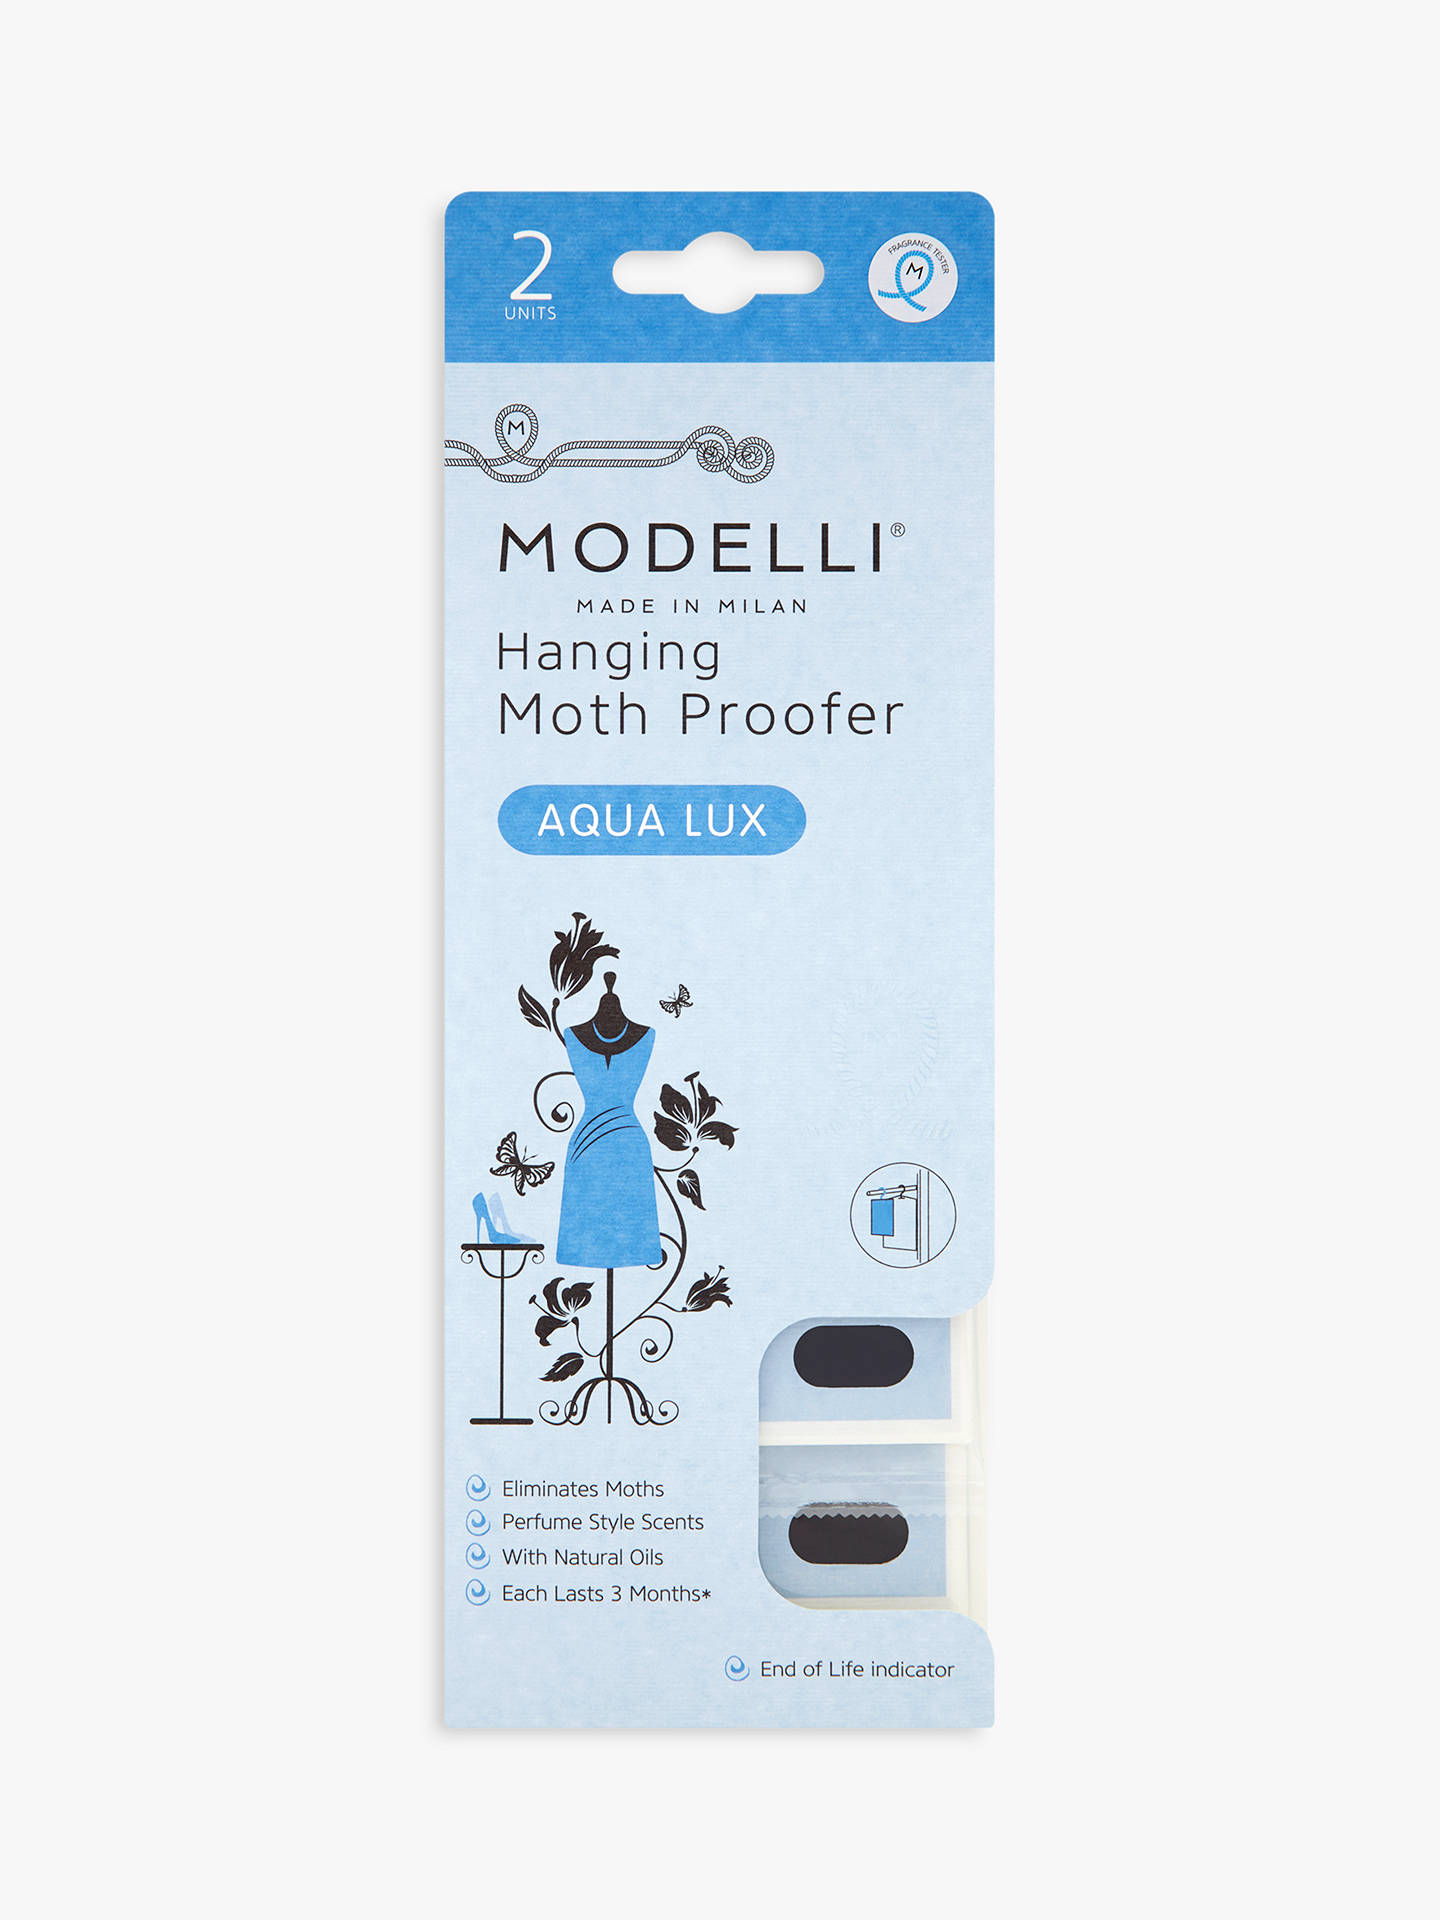 Buy Acana Modelli Aqua Lux Hanging Moth Proofer Sachet, Pack of 2 Online at johnlewis.com